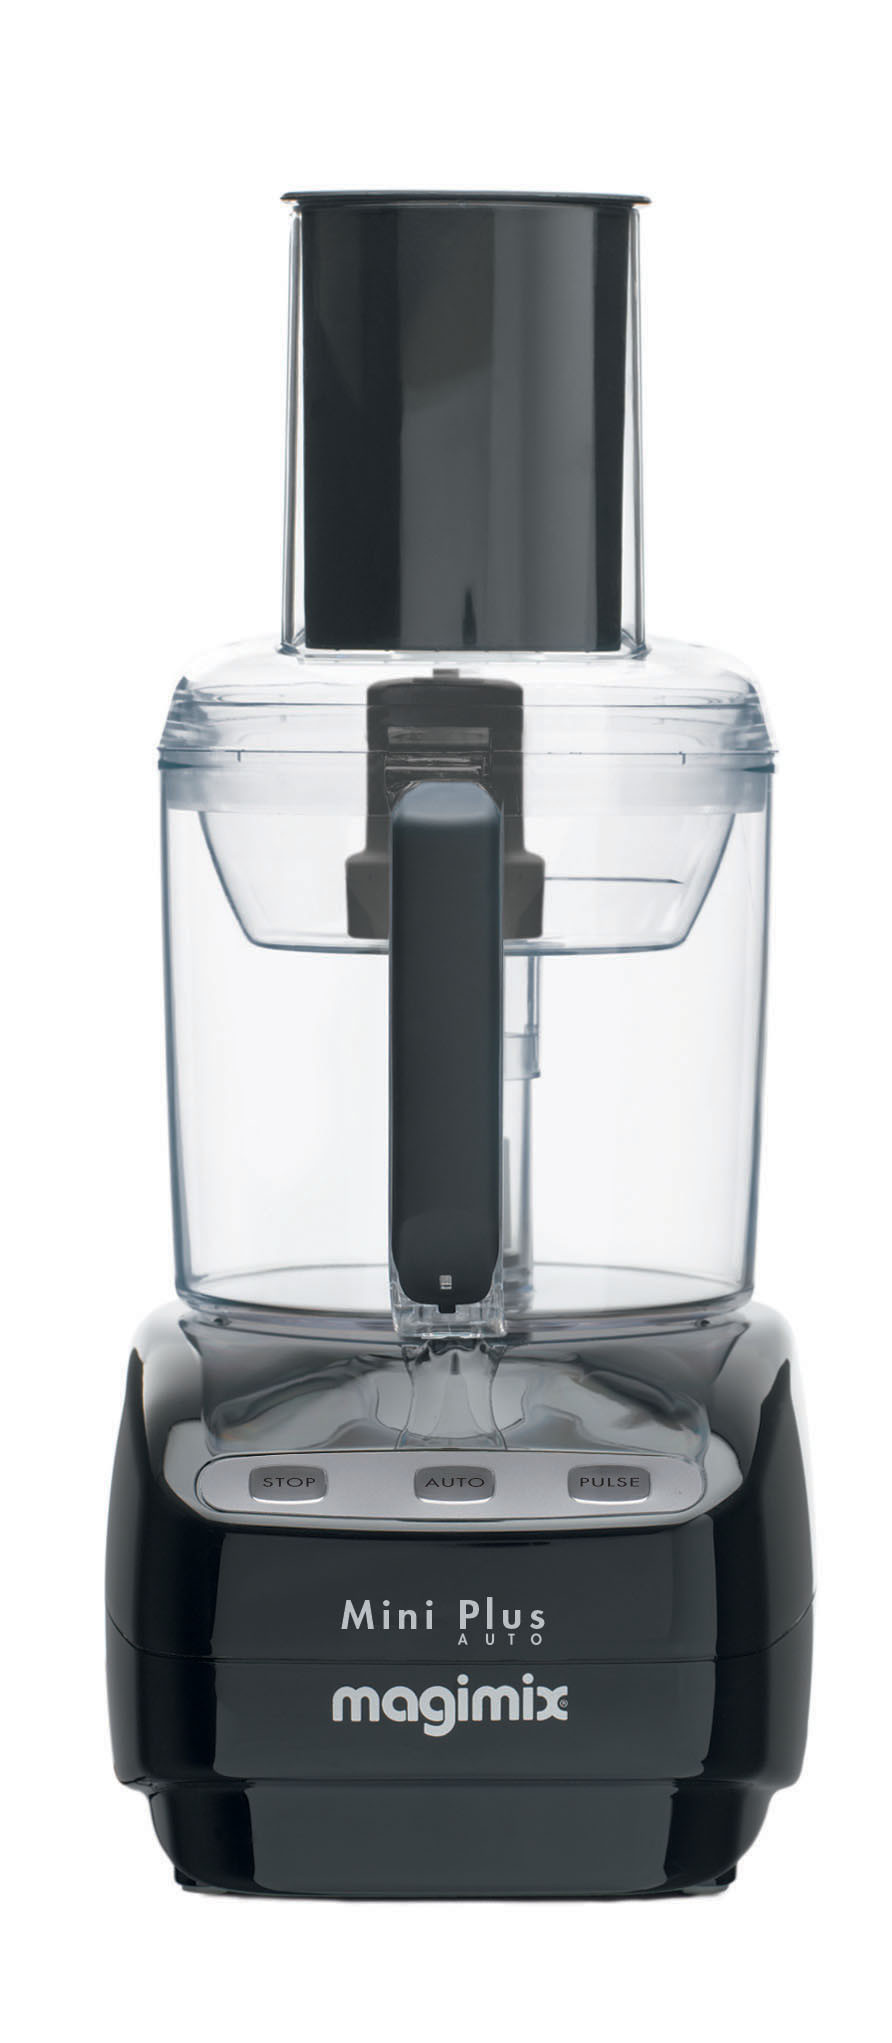 Magimix Le Mini Plus Food Processor featured image